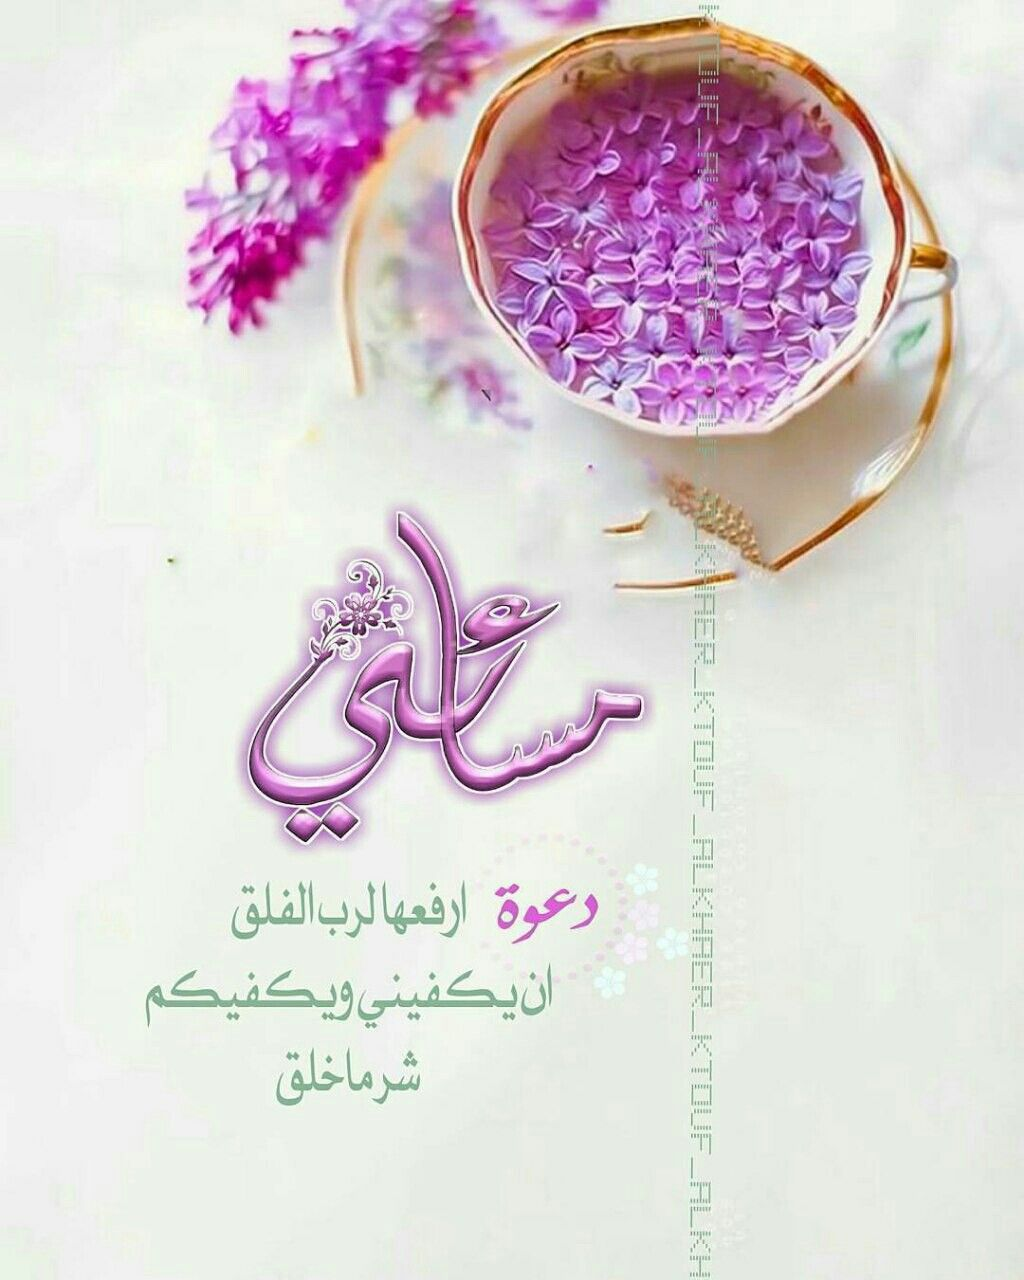 Pin By Ekleel Ward On مساء الخير Evening Greetings Good Evening Islamic Pictures